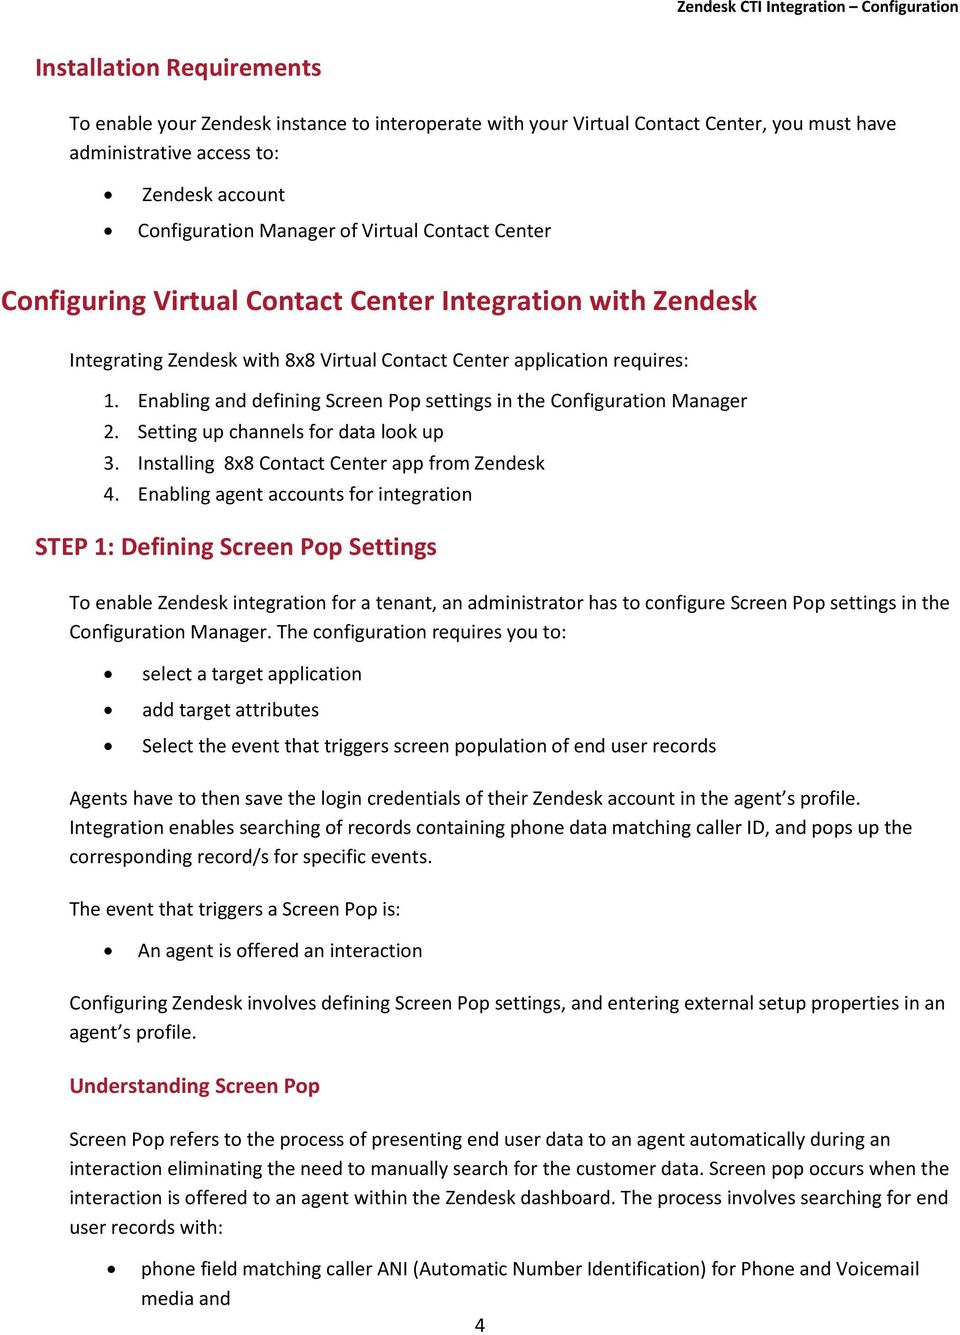 Enabling and defining Screen Pop settings in the Configuration Manager 2. Setting up channels for data look up 3. Installing 8x8 Contact Center app from Zendesk 4.